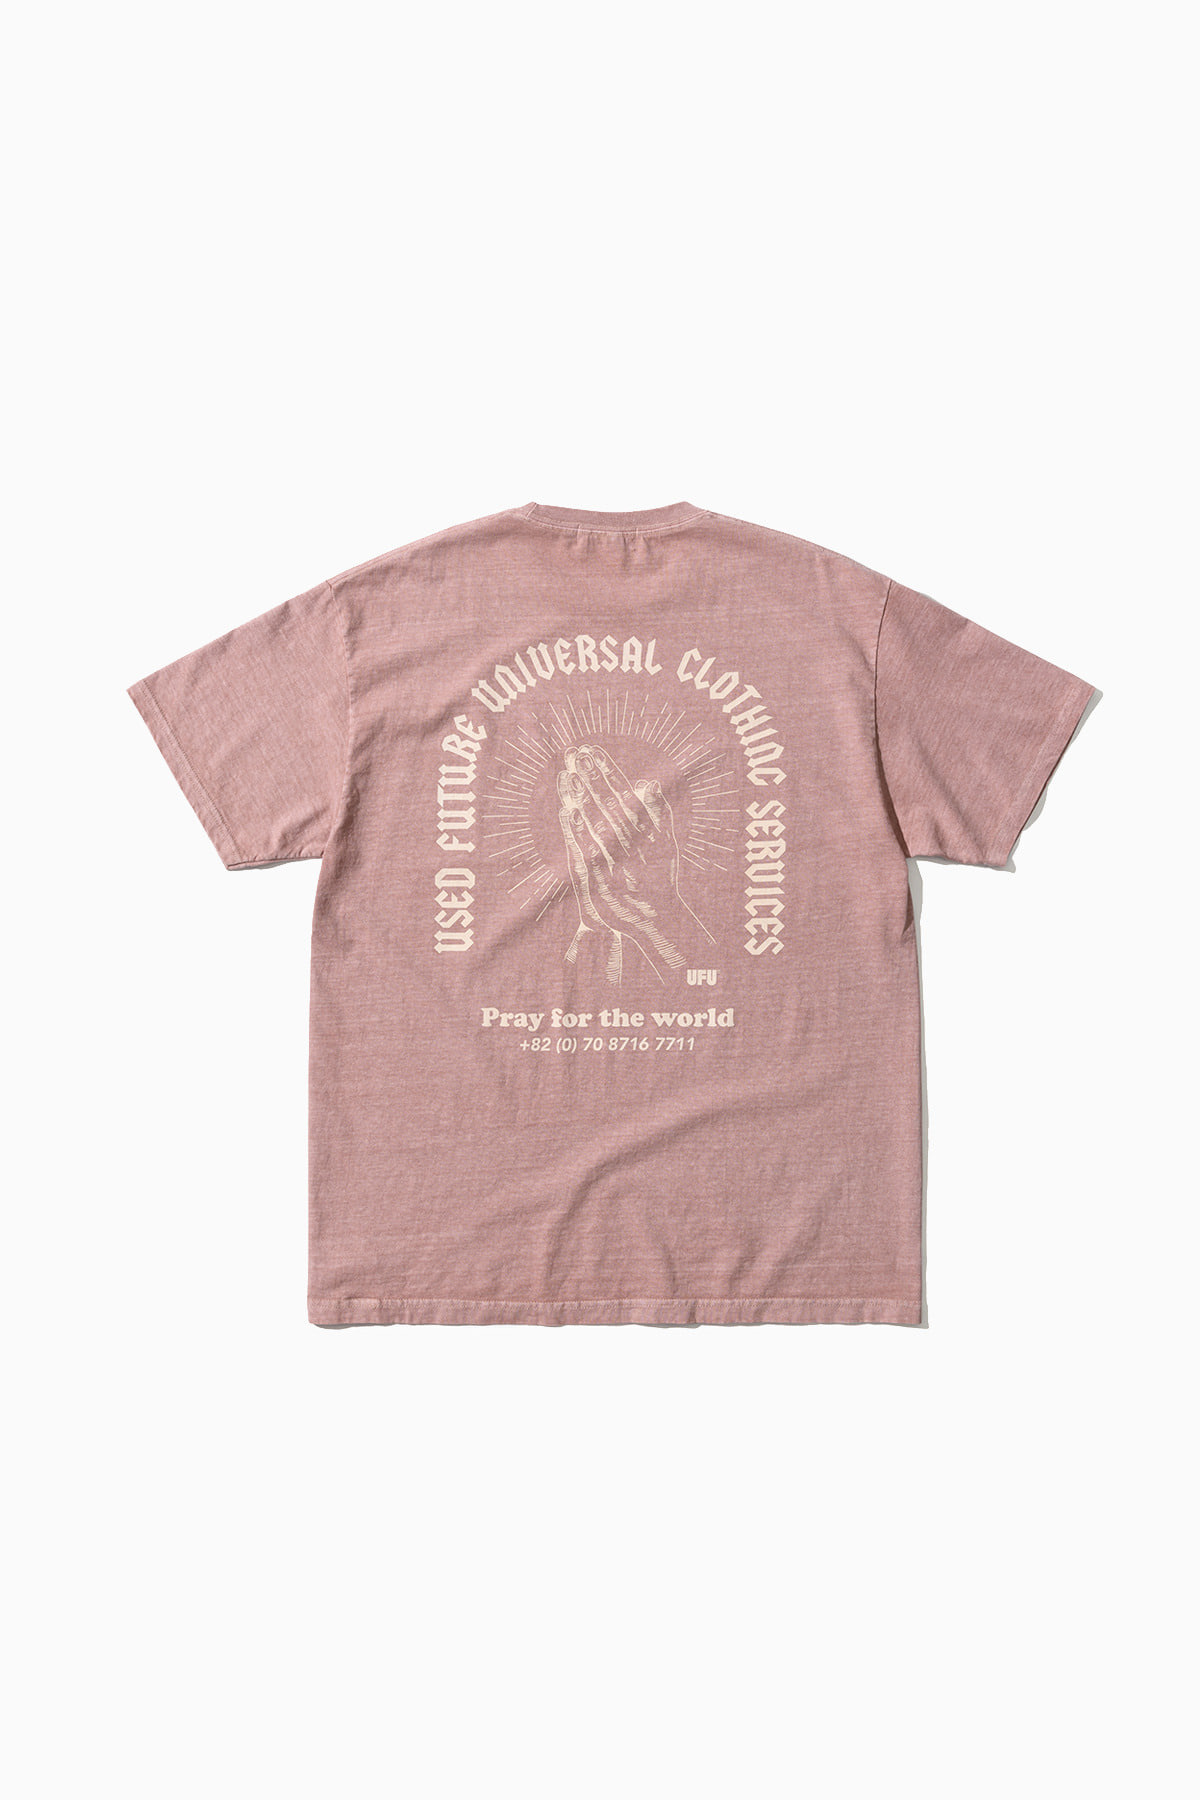 PRAY PIGMENT T-SHIRT_DUST PINK